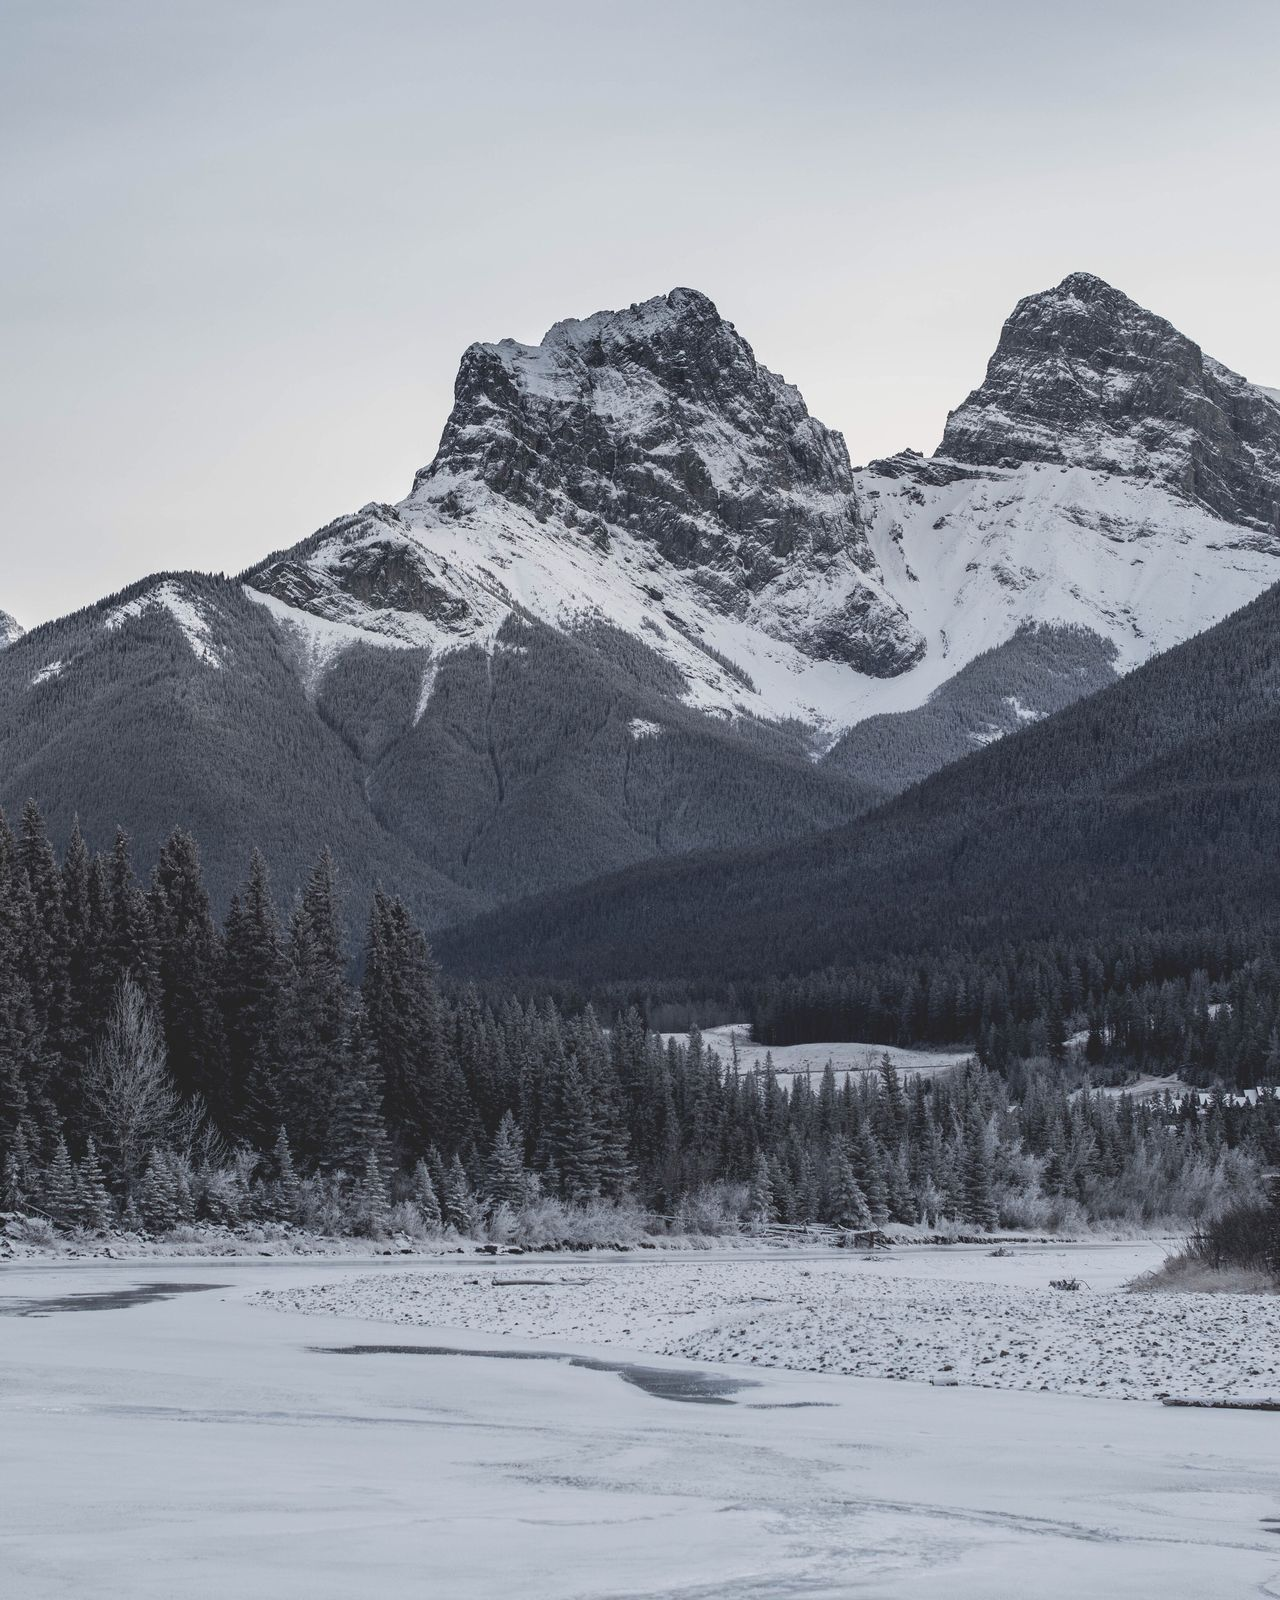 beautiful snowy scenery Mountain Snow Winter Cold Temperature Nature Sky No People Tranquility Scenics Landscape Outdoors Beauty In Nature Day Tree Blue Alberta Tones Canmore Banff National Park  Moody Beauty In Nature Canada Photography Nature Photography Mountain View